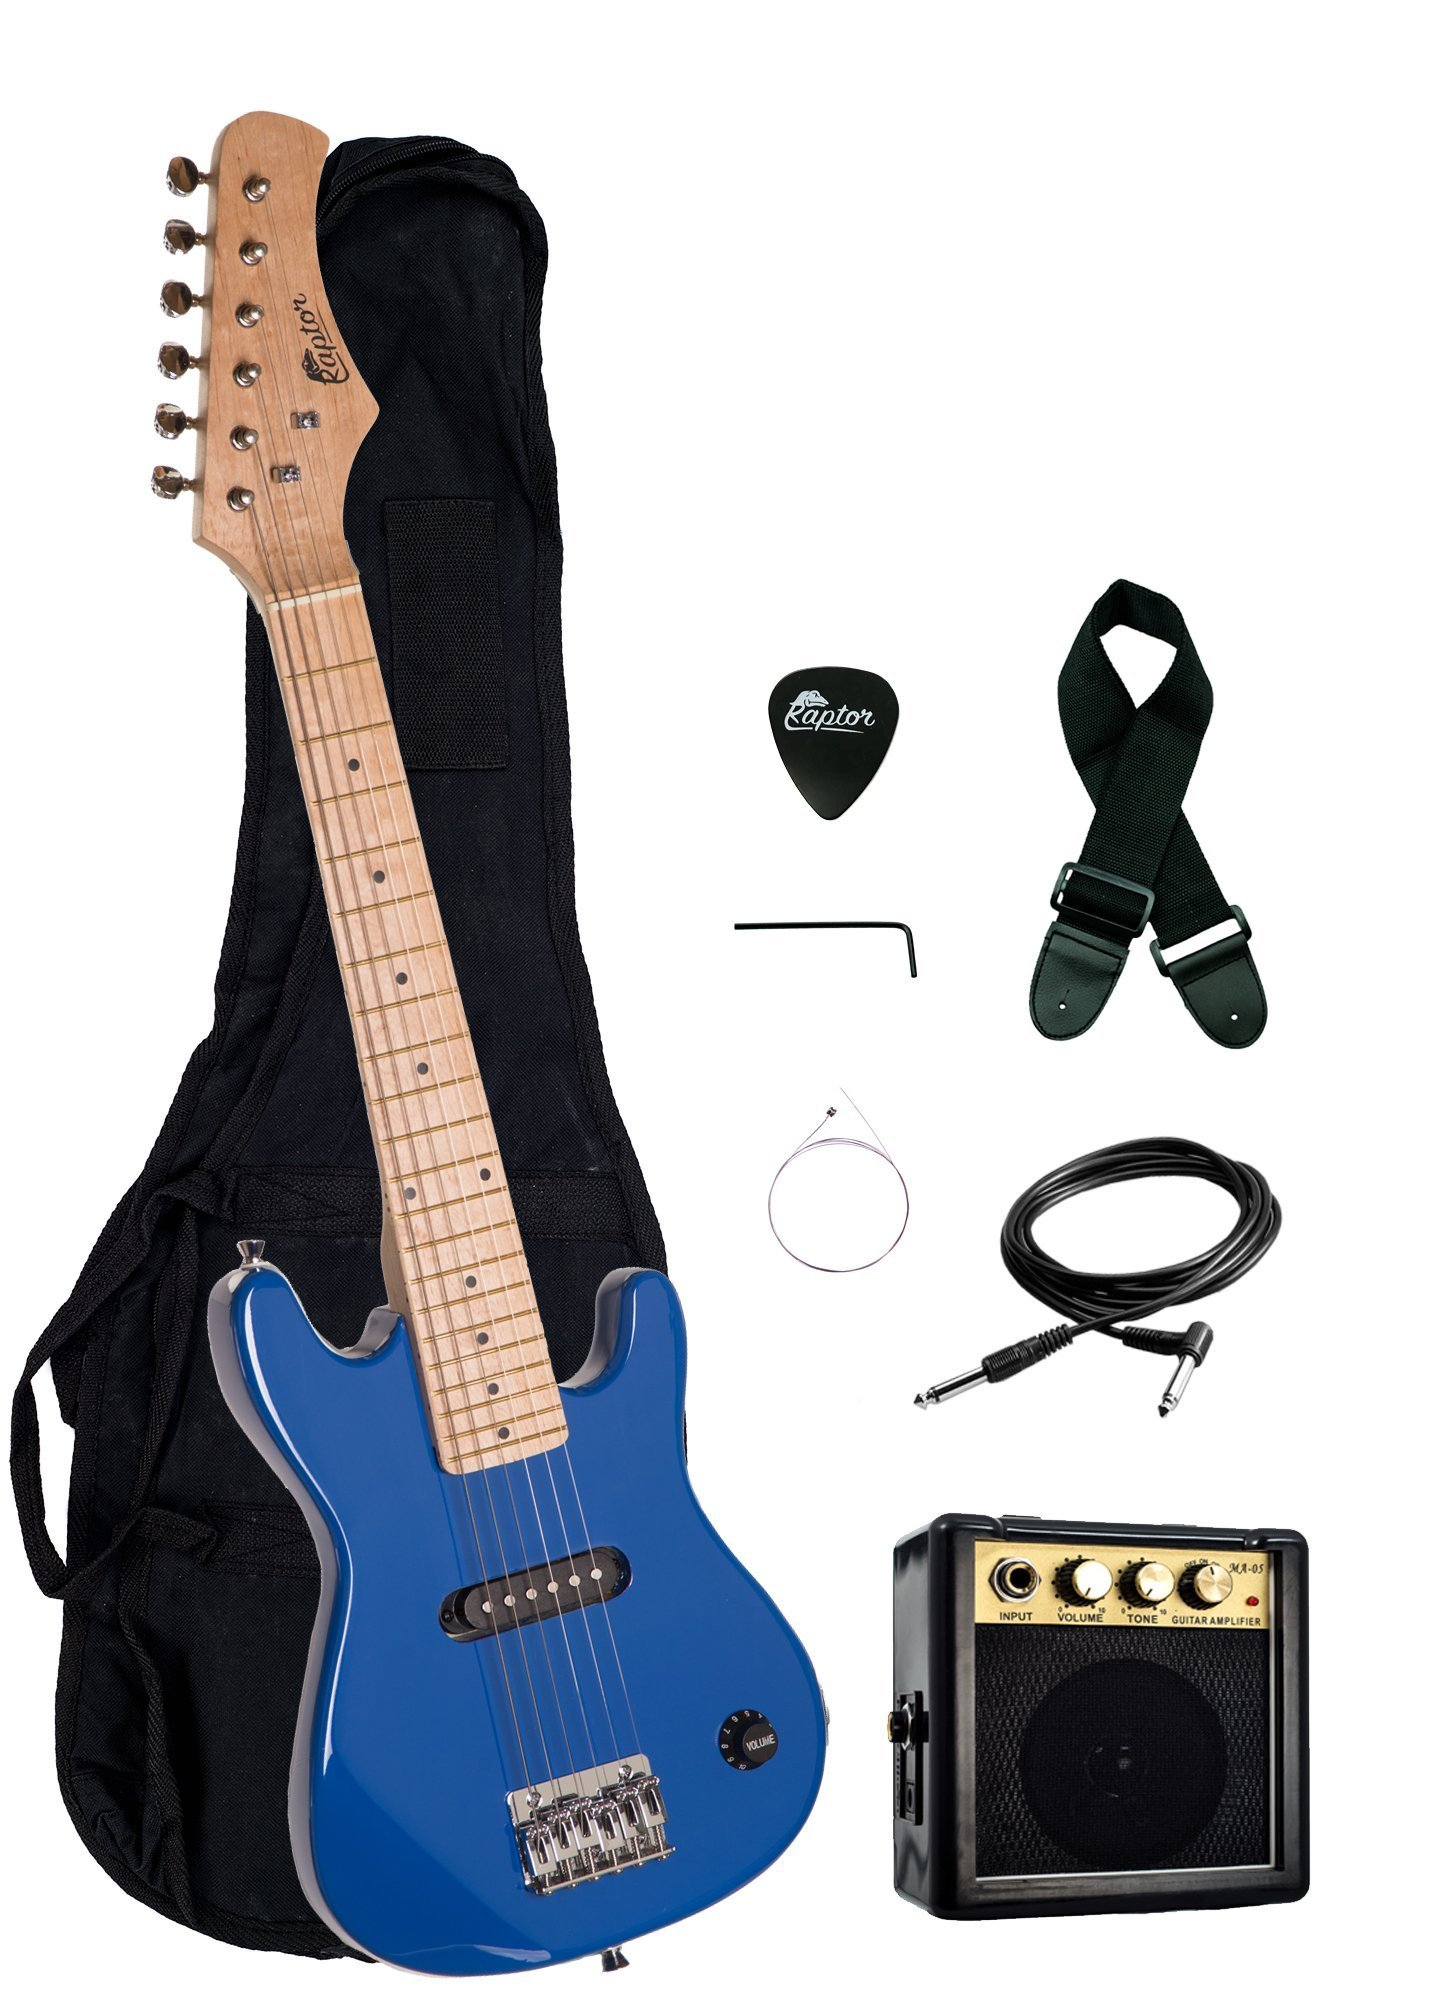 Raptor EP3 30'' Kids 1/2 Size Electric Guitar Package with Portable 3W Amp, Gig Bag, Strap, Cable and Raptor Picks - BLUE